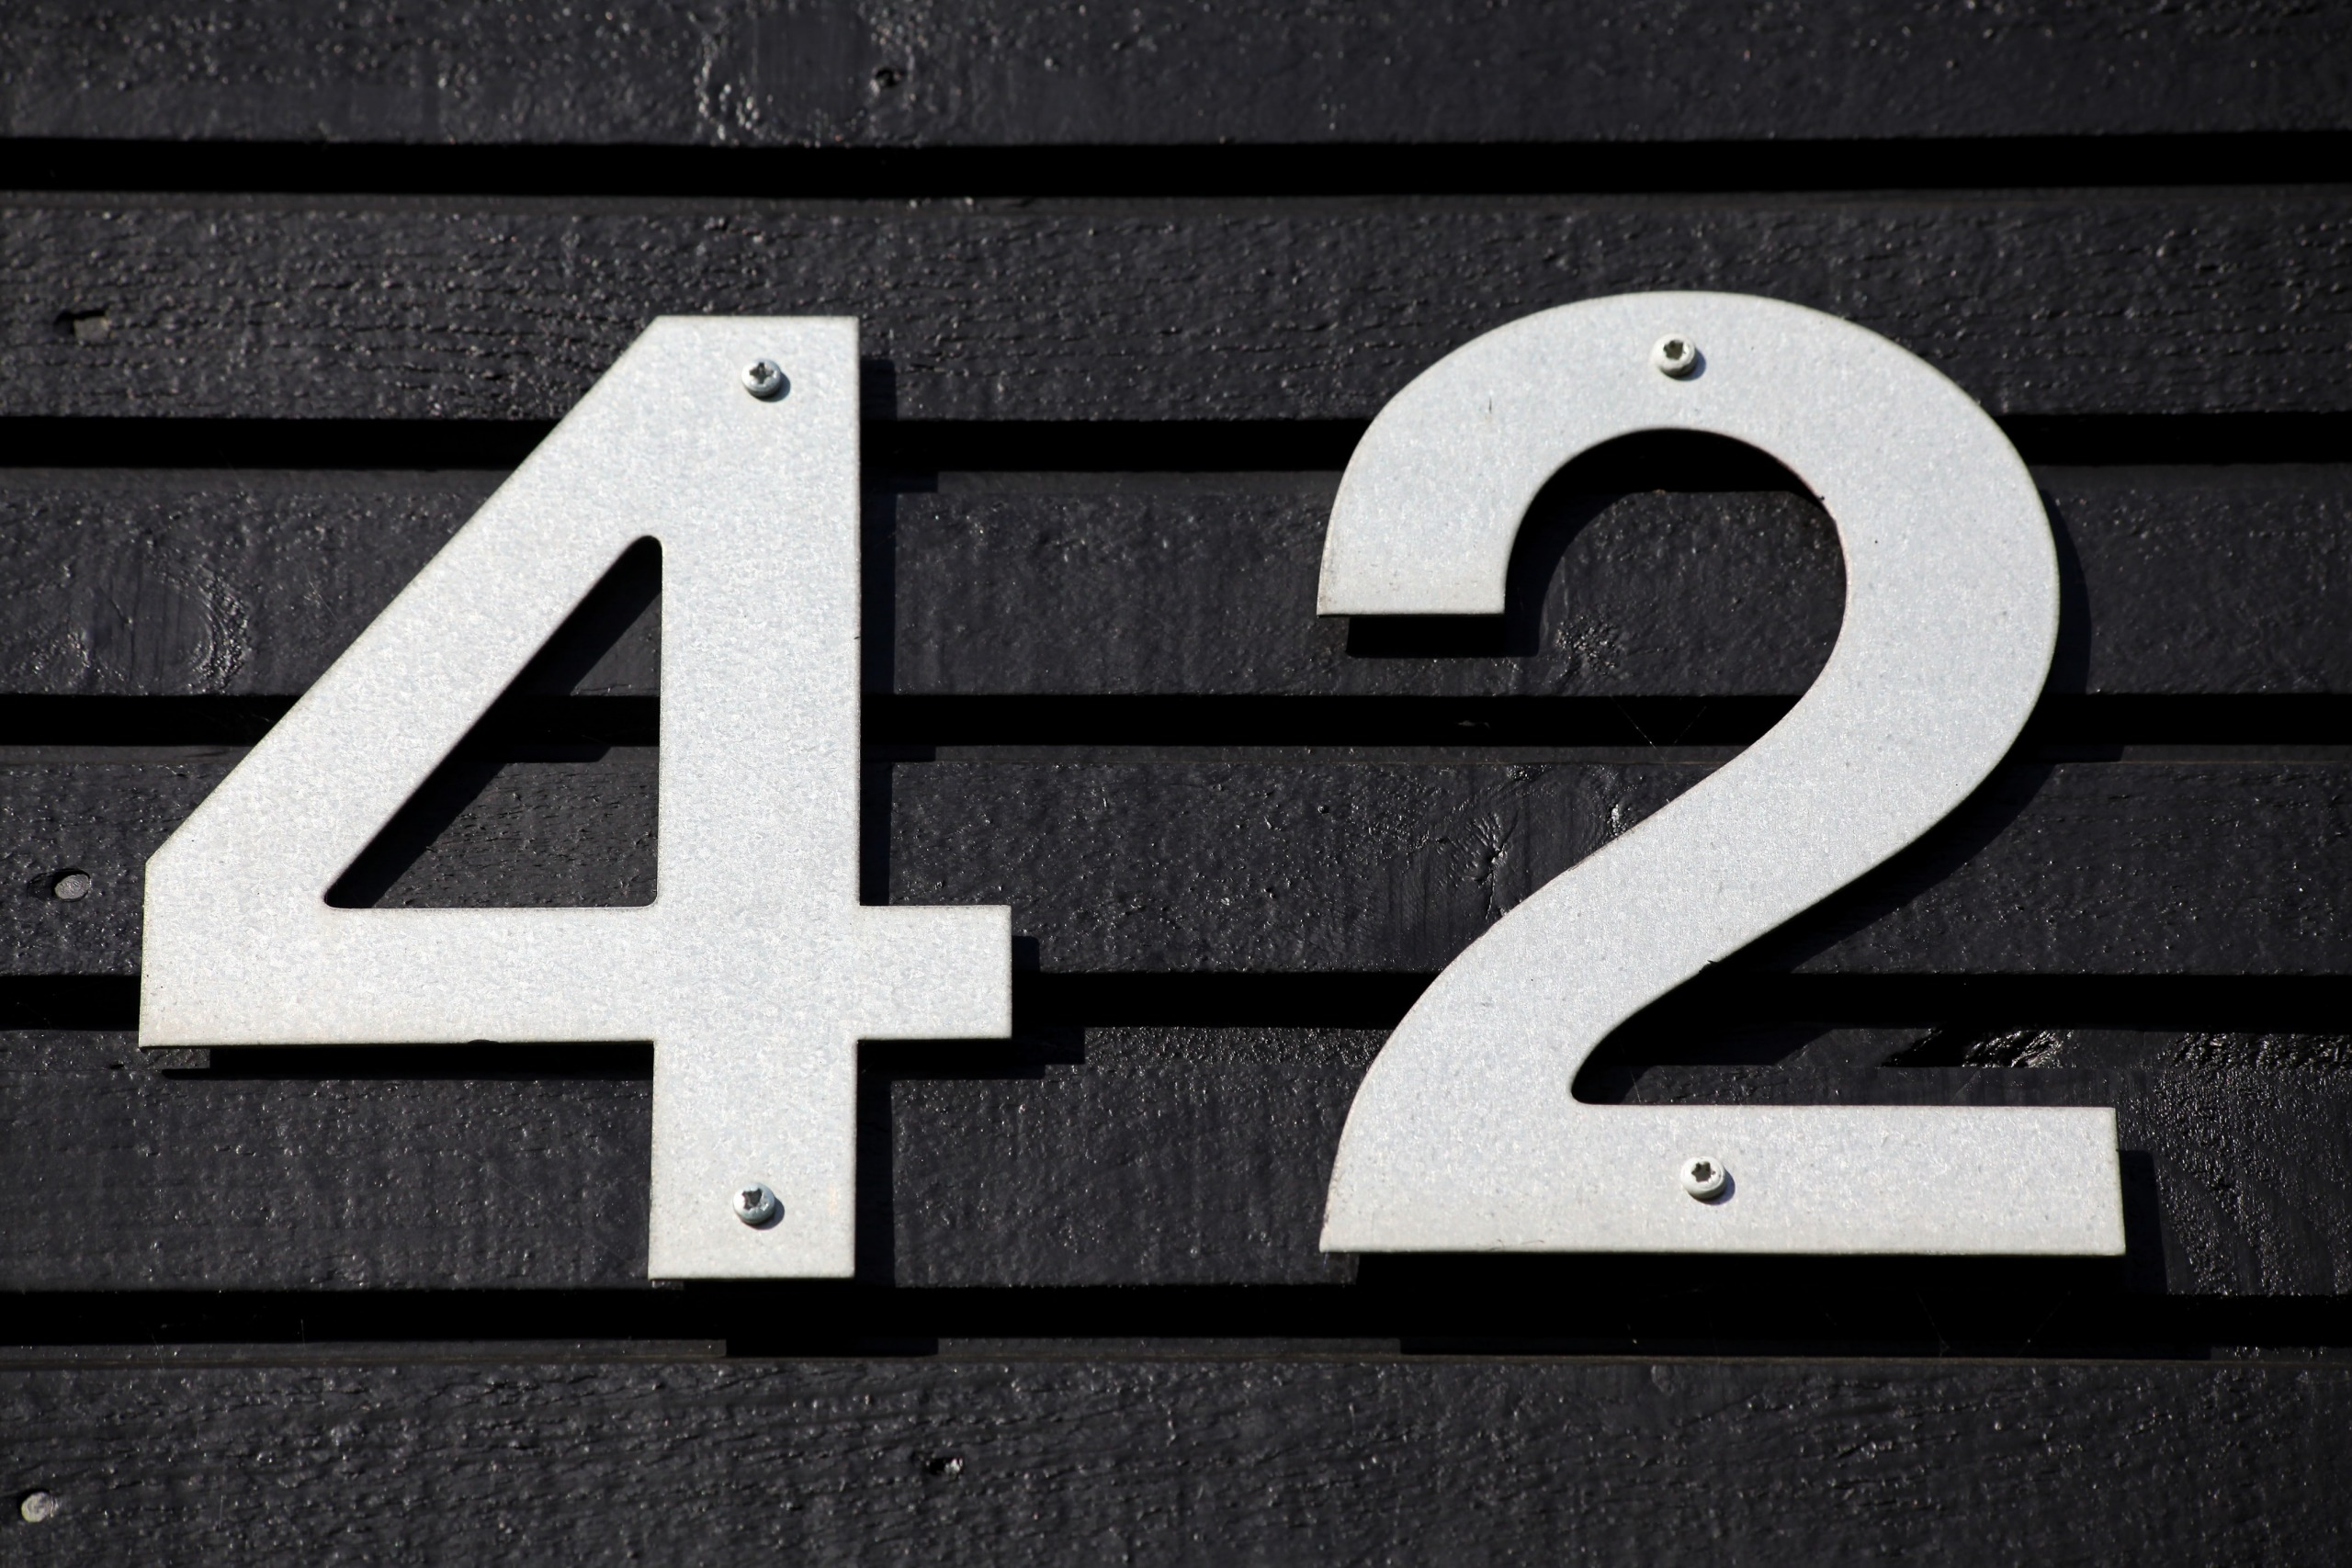 42 isn't the answer to everything